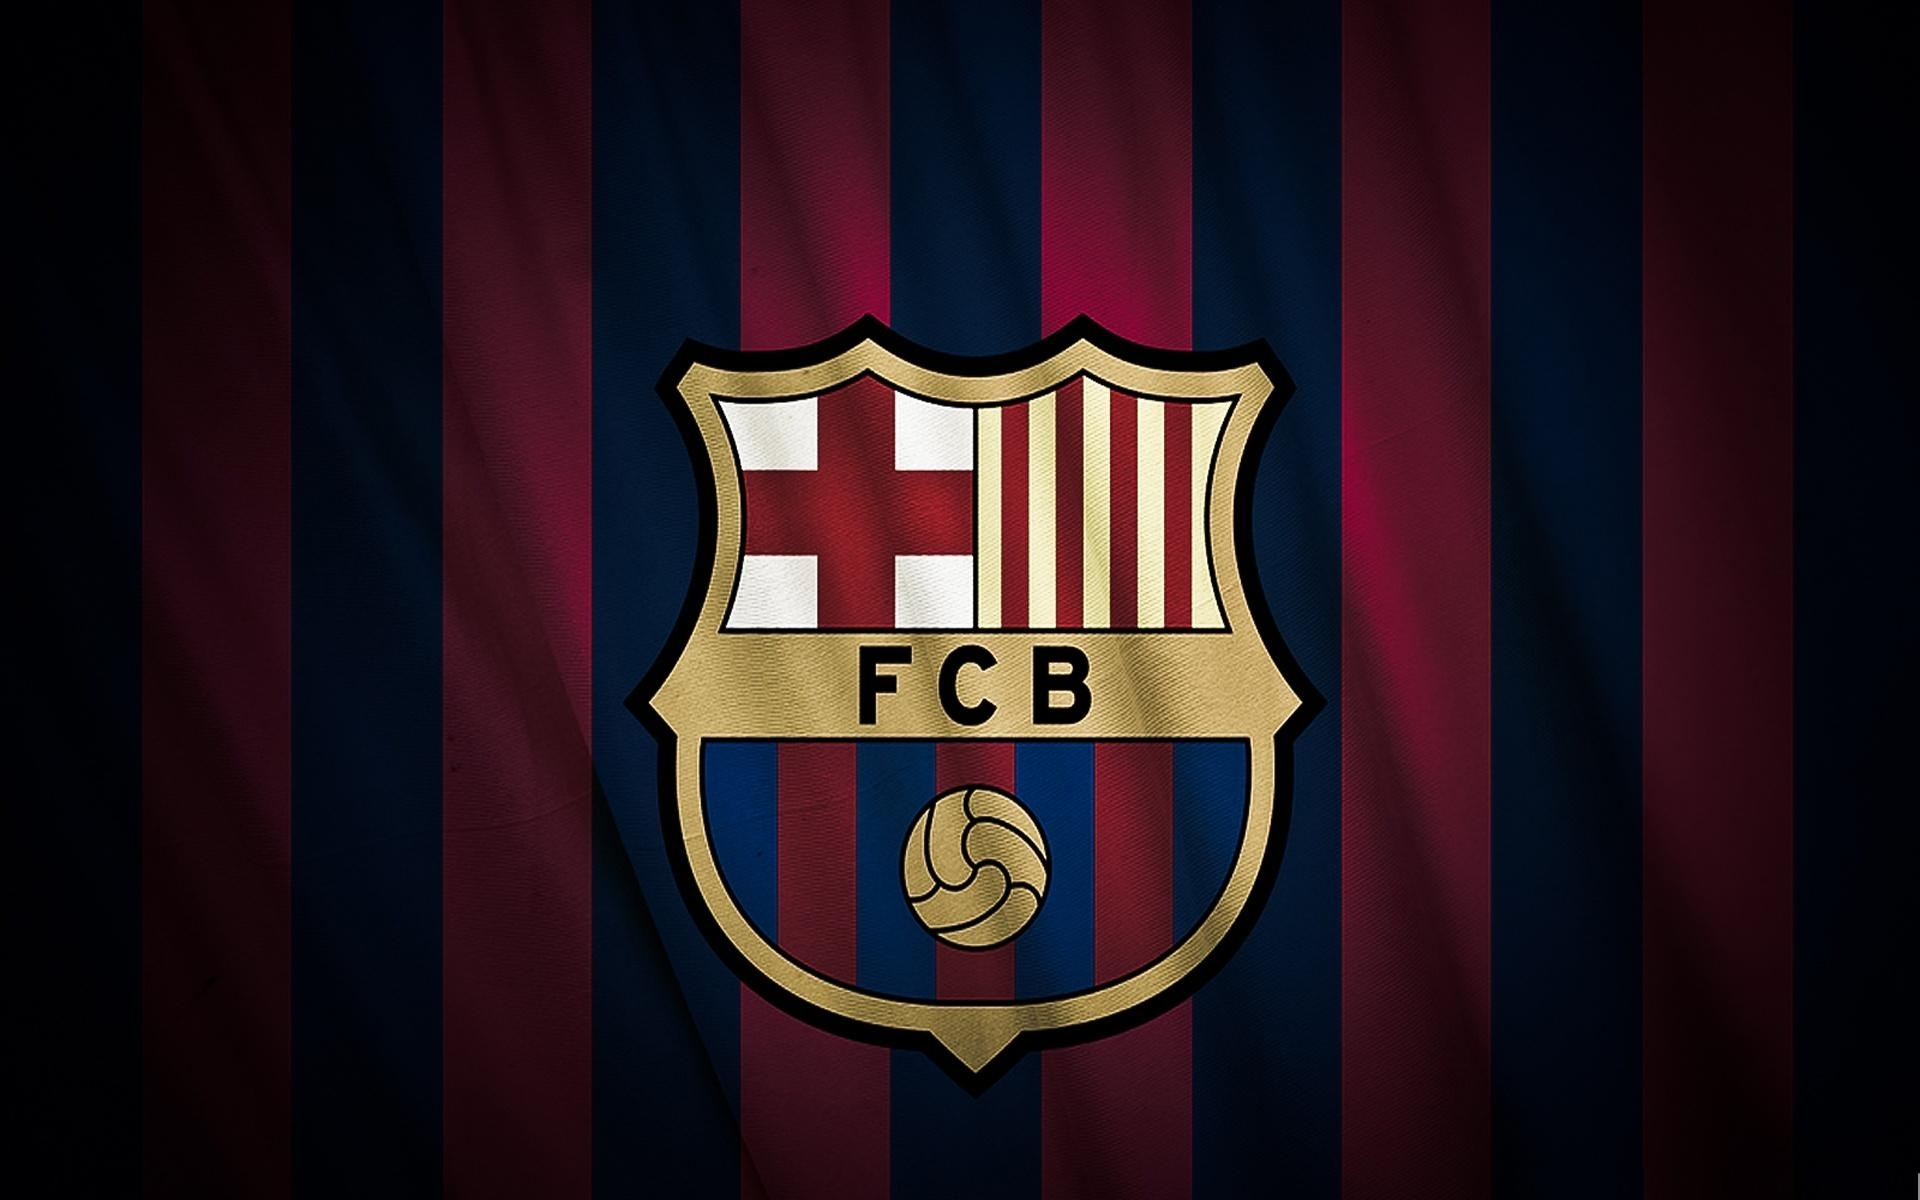 10 Best Barcelona Football Club Wallpaper FULL HD 1080p For PC Desktop